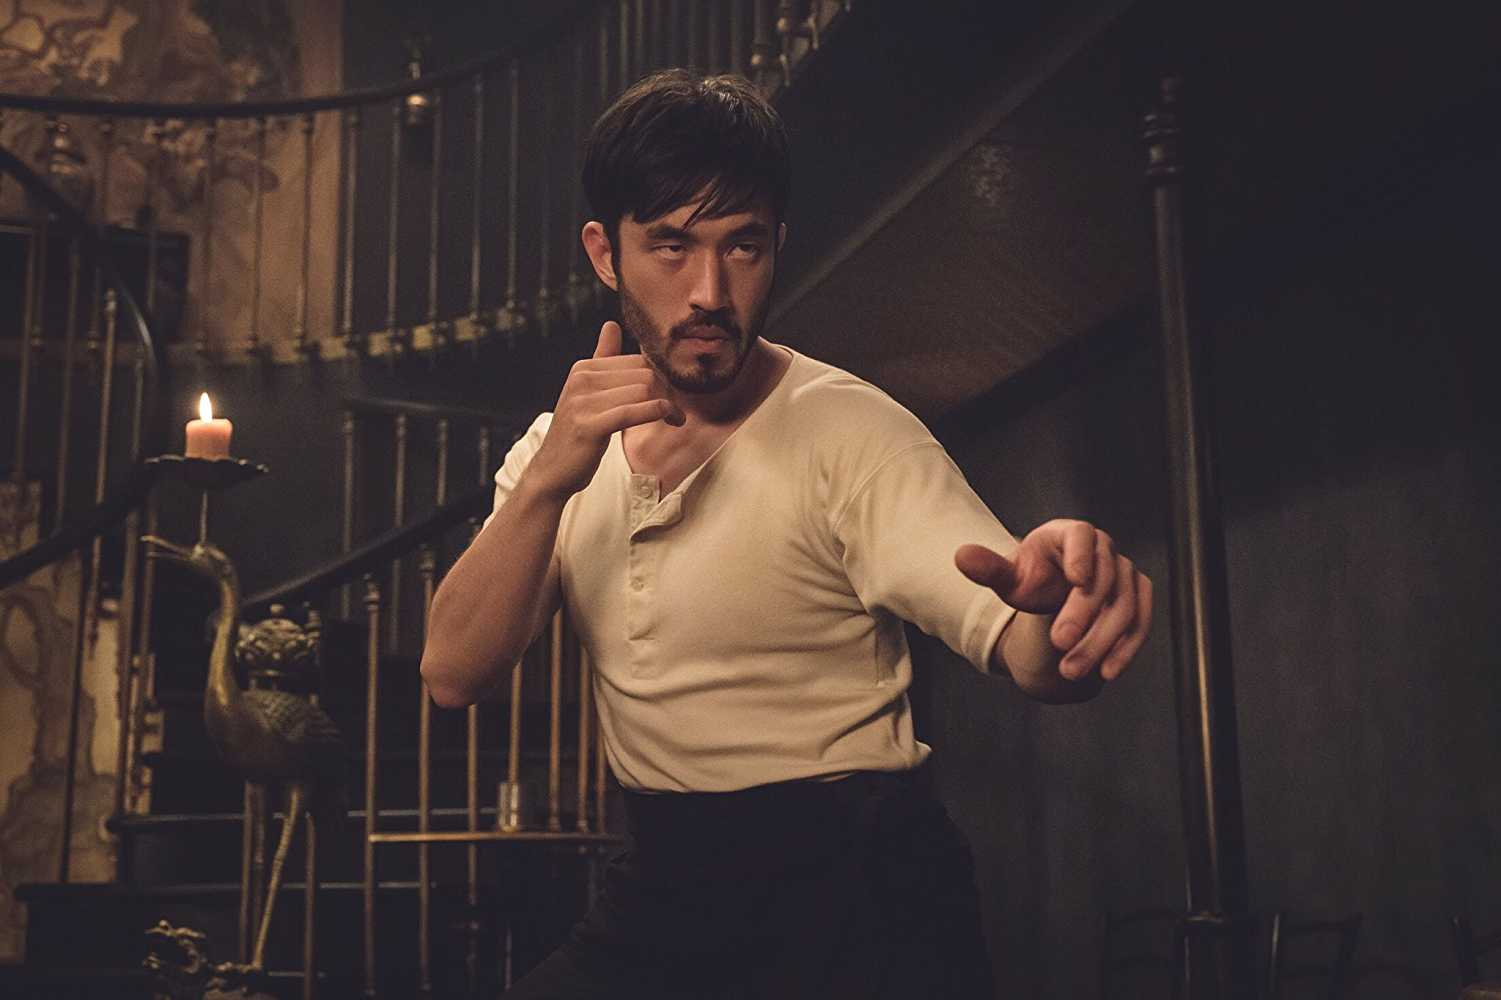 Andrew Koji in 'Warrior'. (IMDb)